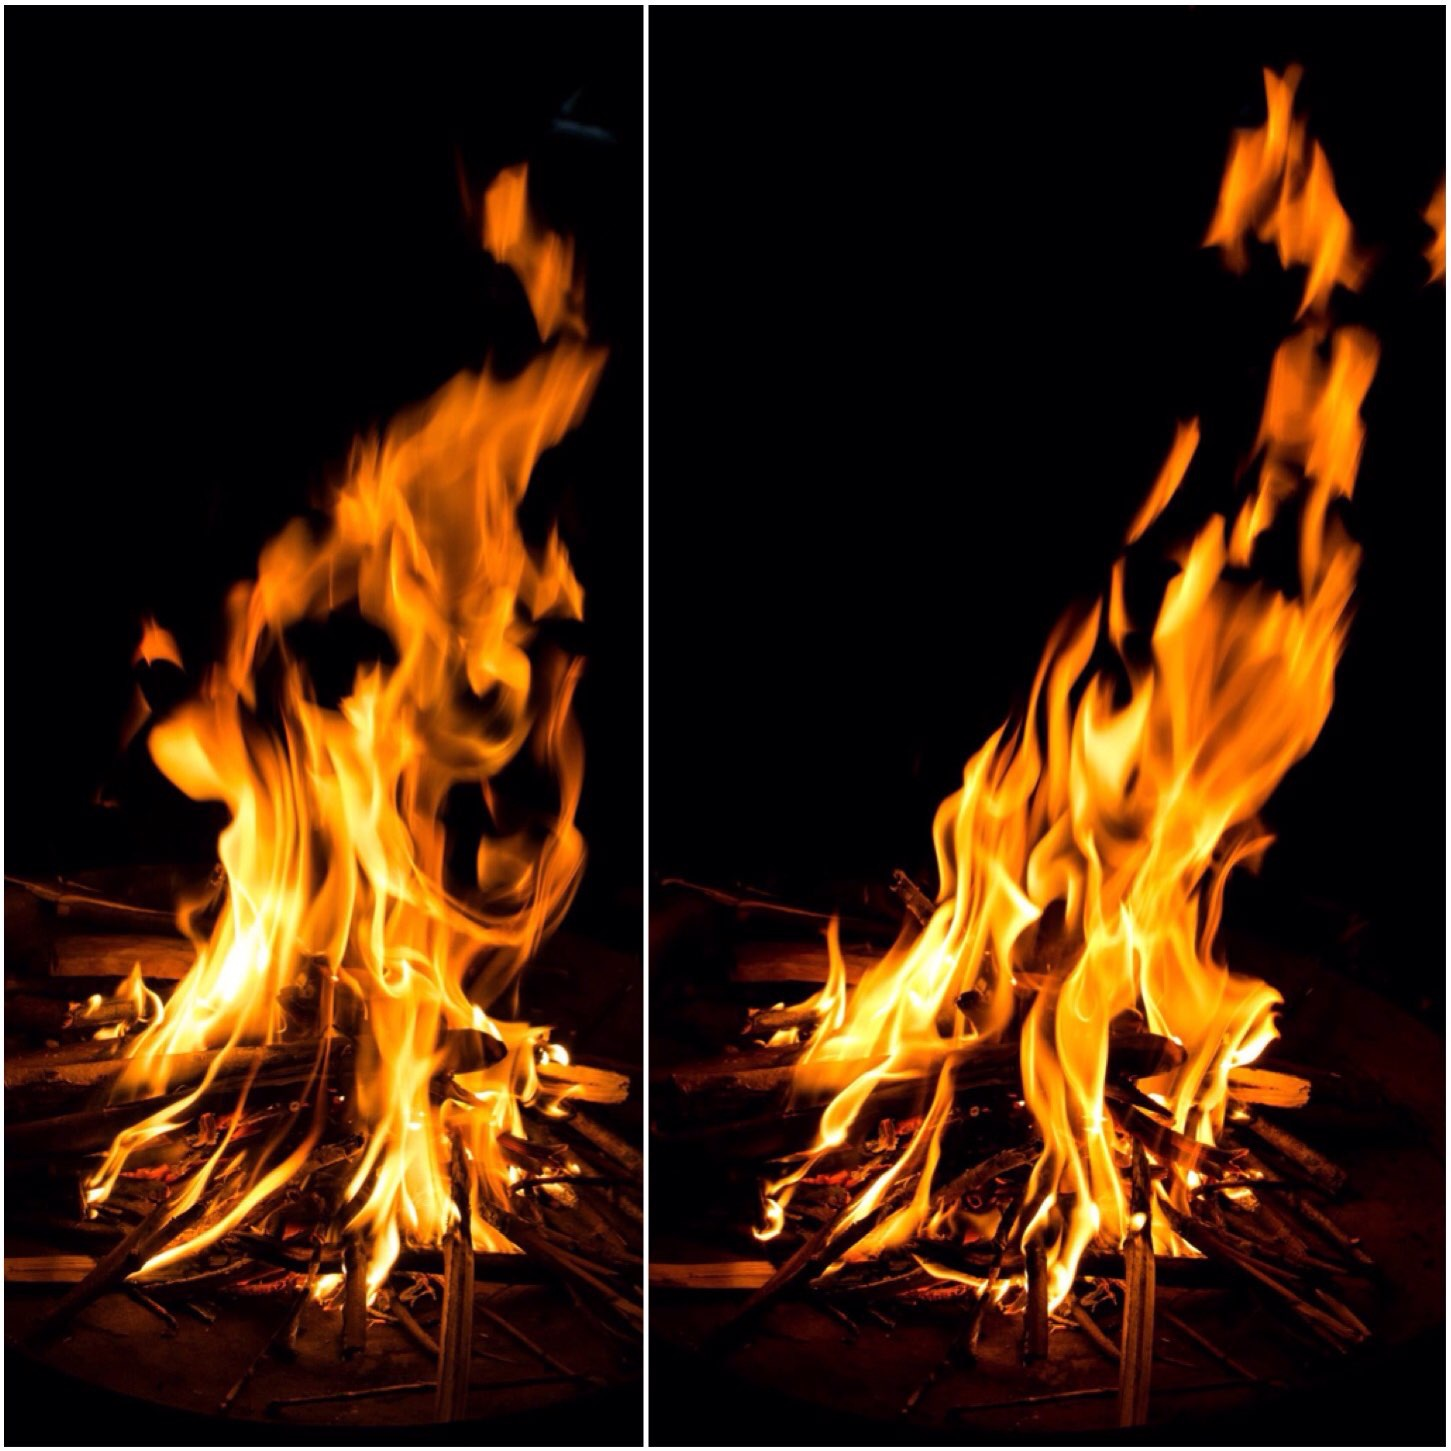 Fire Faces - How many can you see?